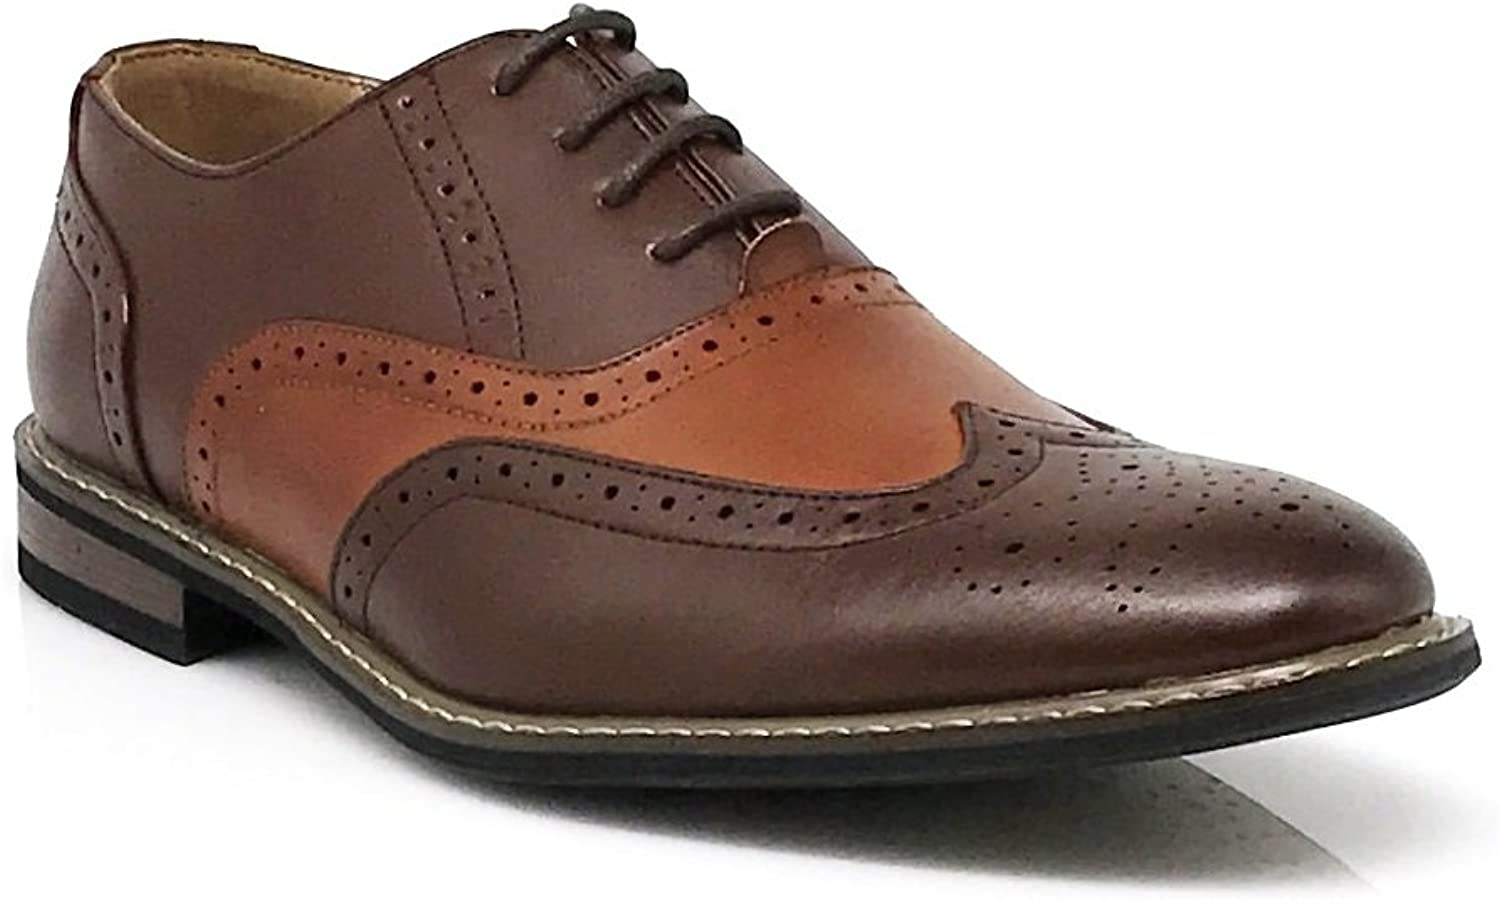 Enzo Romeo Wood8 Men's Spectator Two Tone Brown Tan Wingtips Oxfords Perforated Lace Up Dress shoes